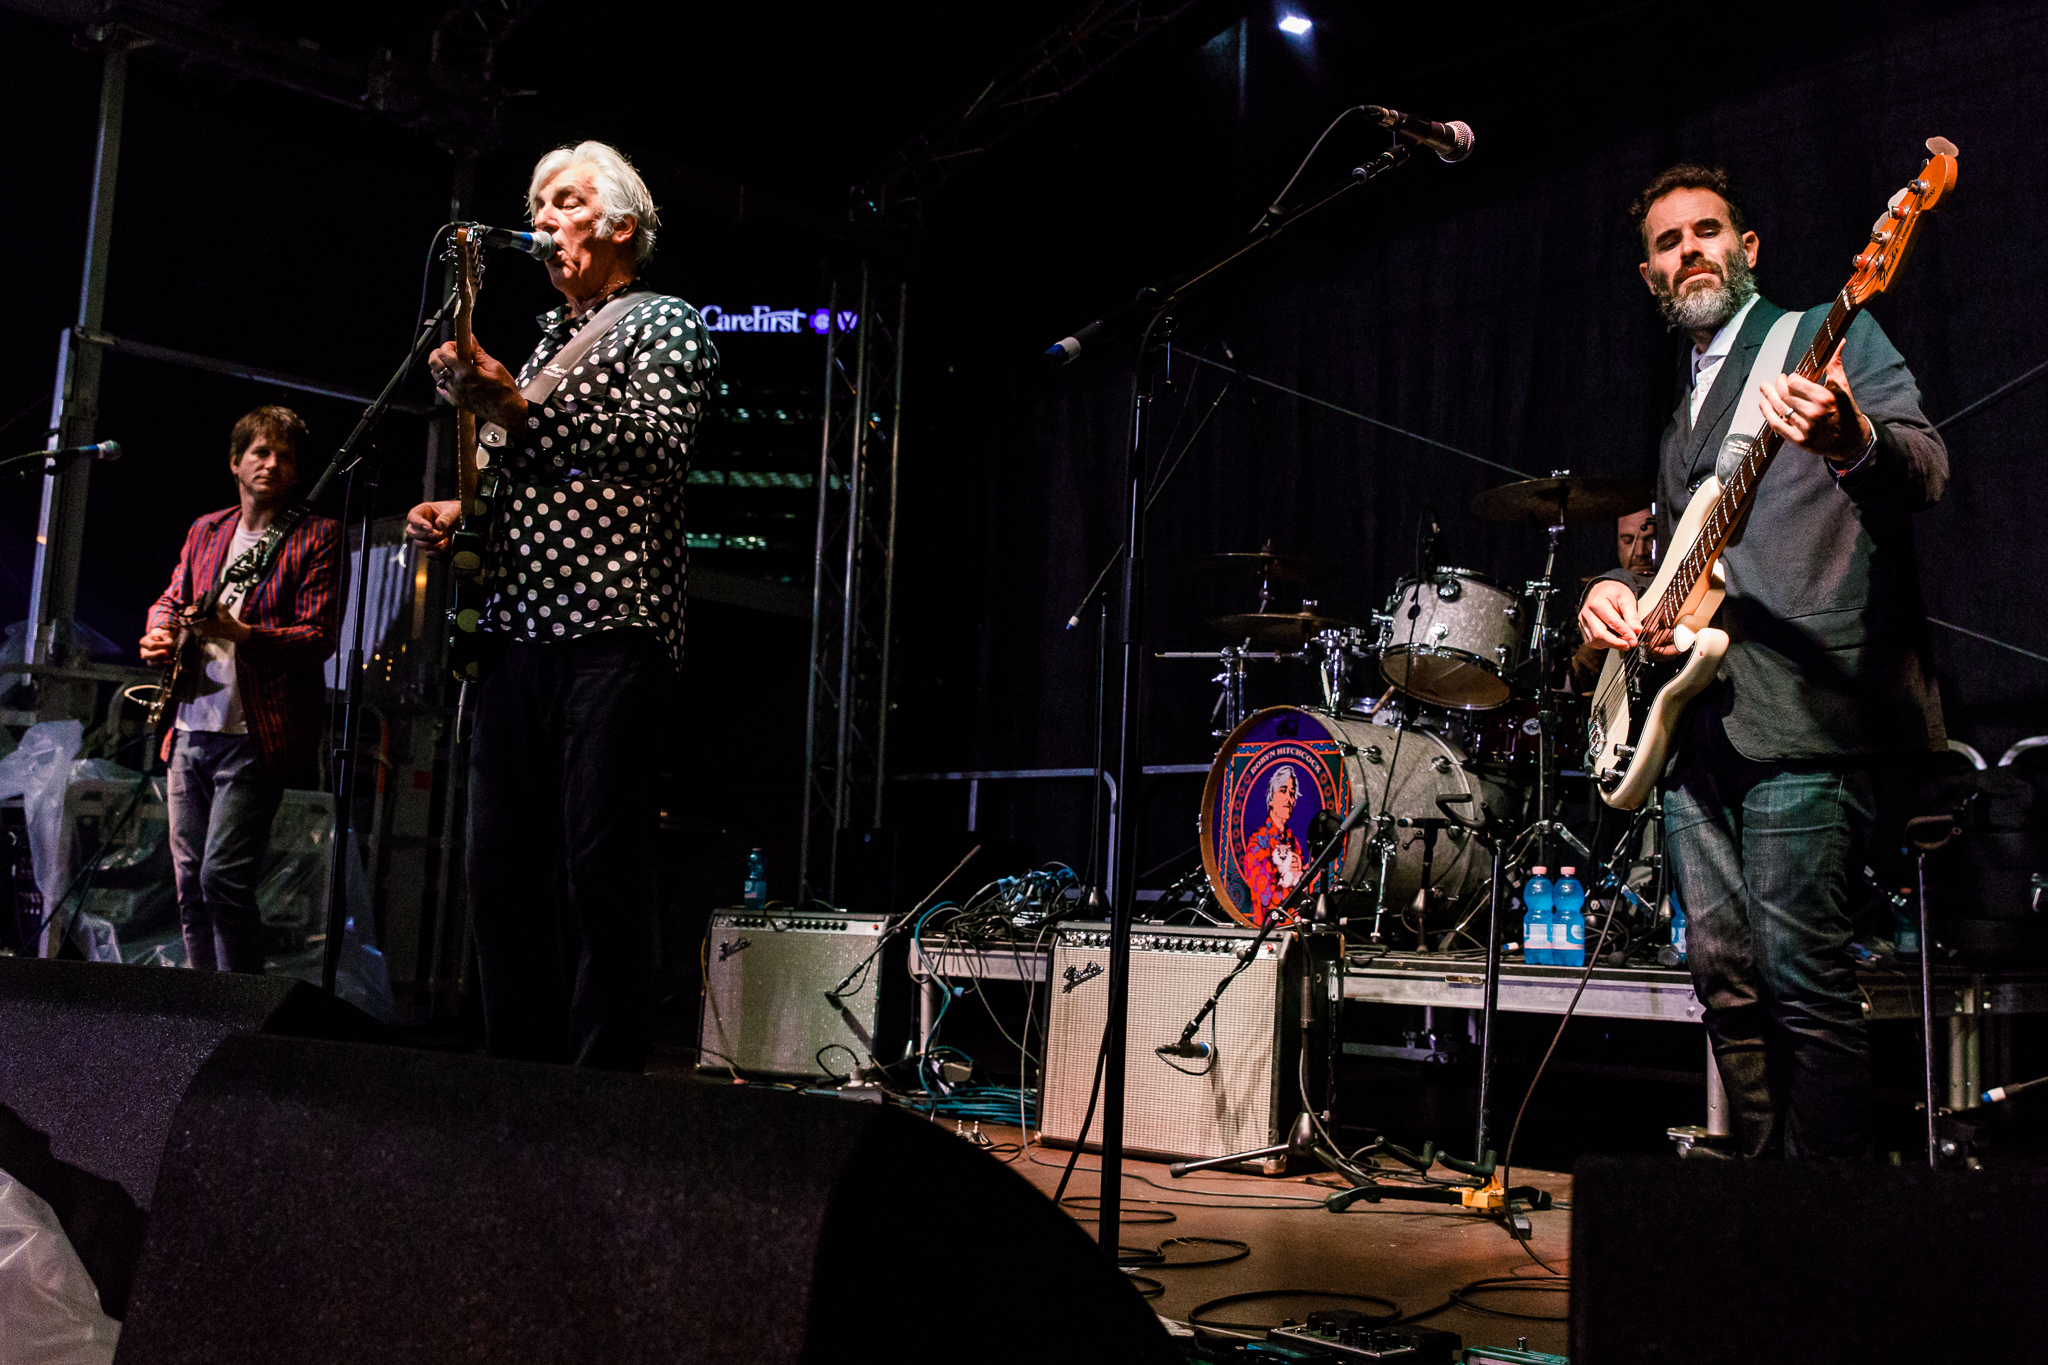 Robyn Hitchcock and His LA Squires performing at WTMD First Thursdays in Canton Waterfront Park, Baltimore - 7/6/2017 (photo by Matt Condon / @arcane93)